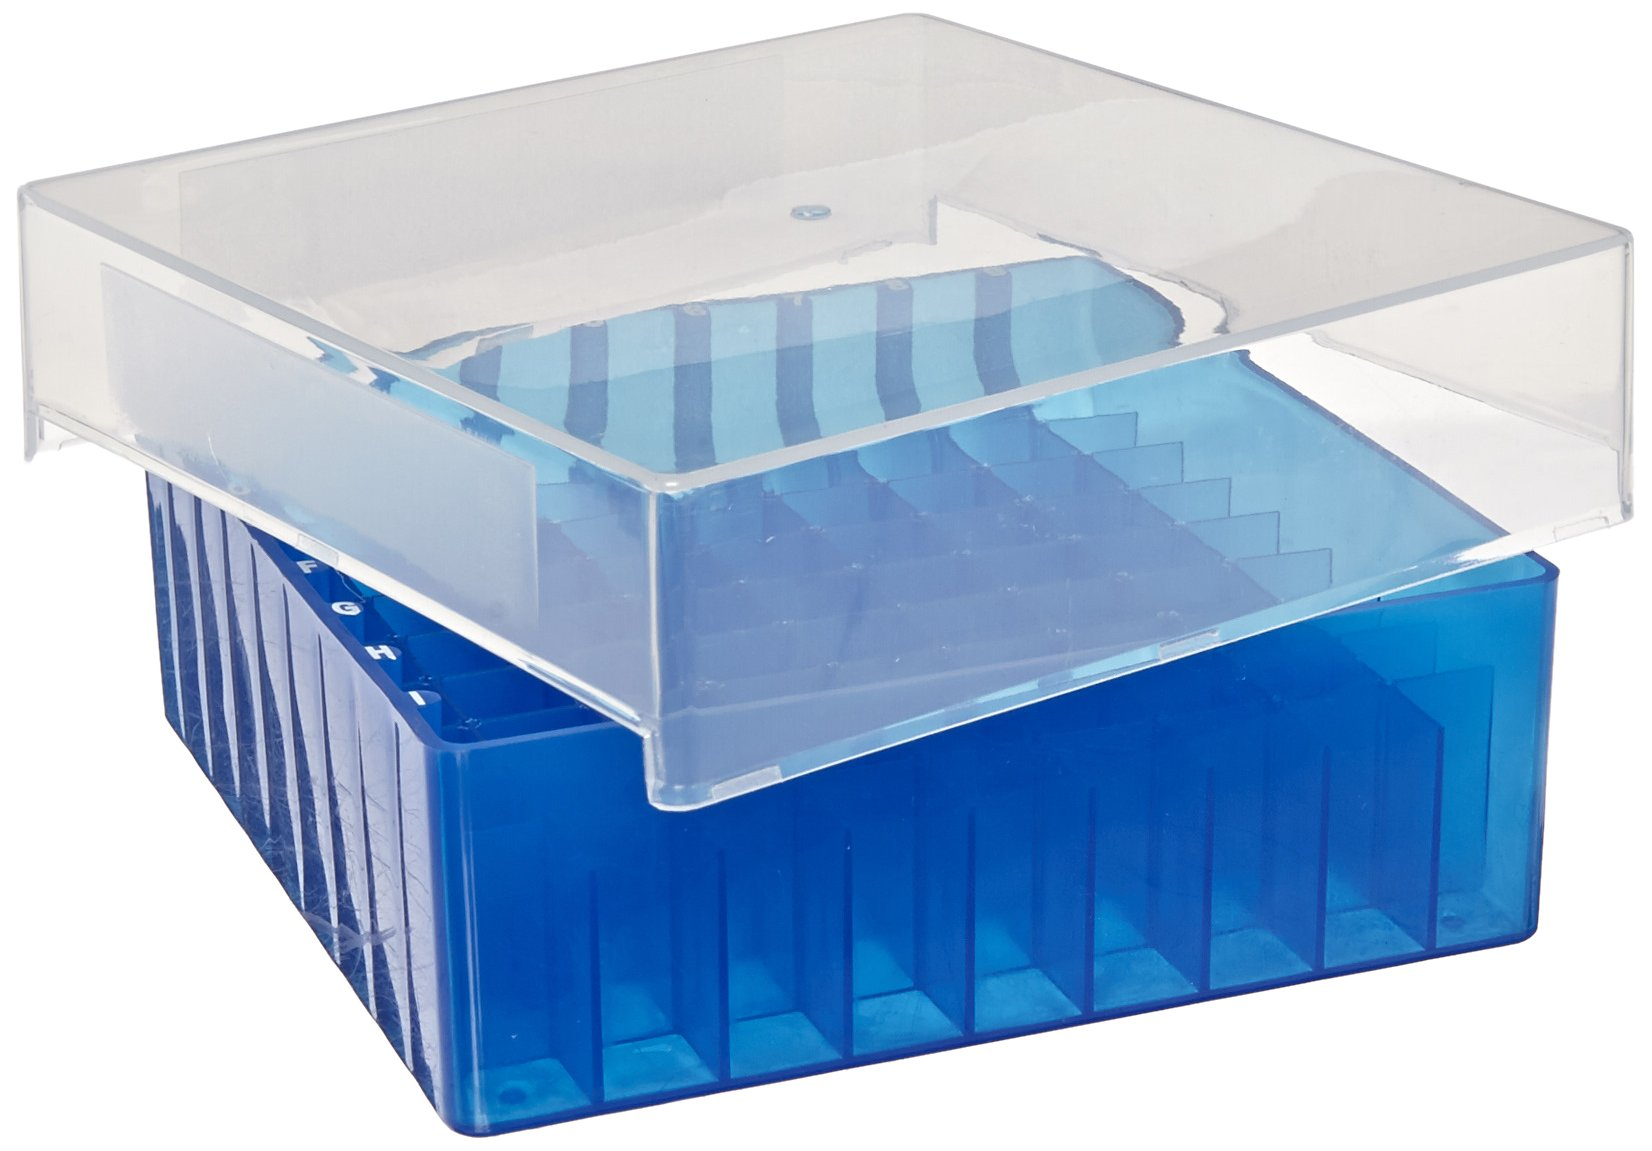 Argos PolarSafe R3117 Polypropylene 81-Place Storage Box, Assorted (Pack of 5)